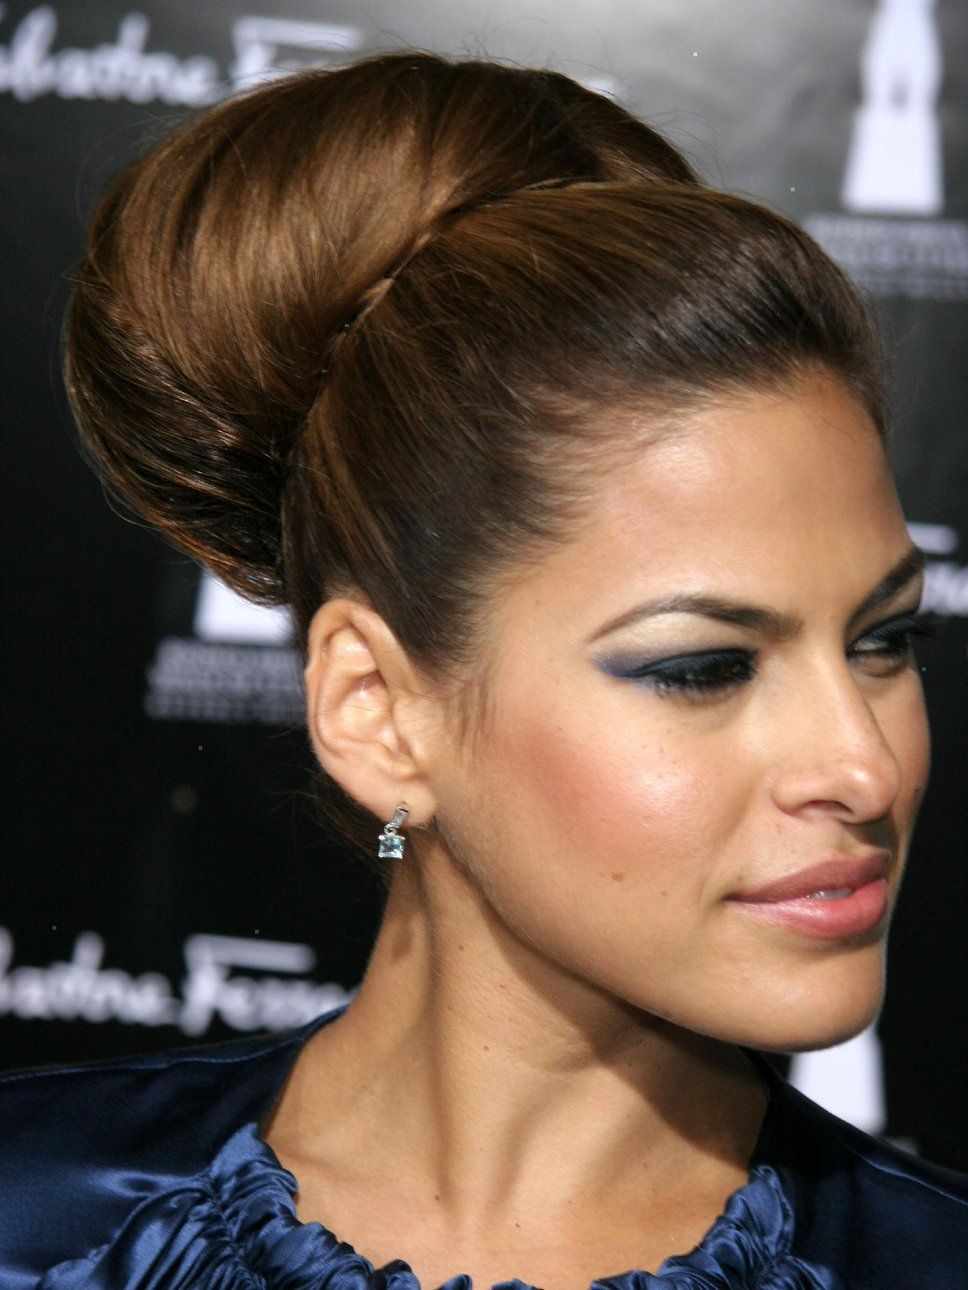 Eva Mendes Hairstyle Top Knot Hair Tricks Trends Pinterest